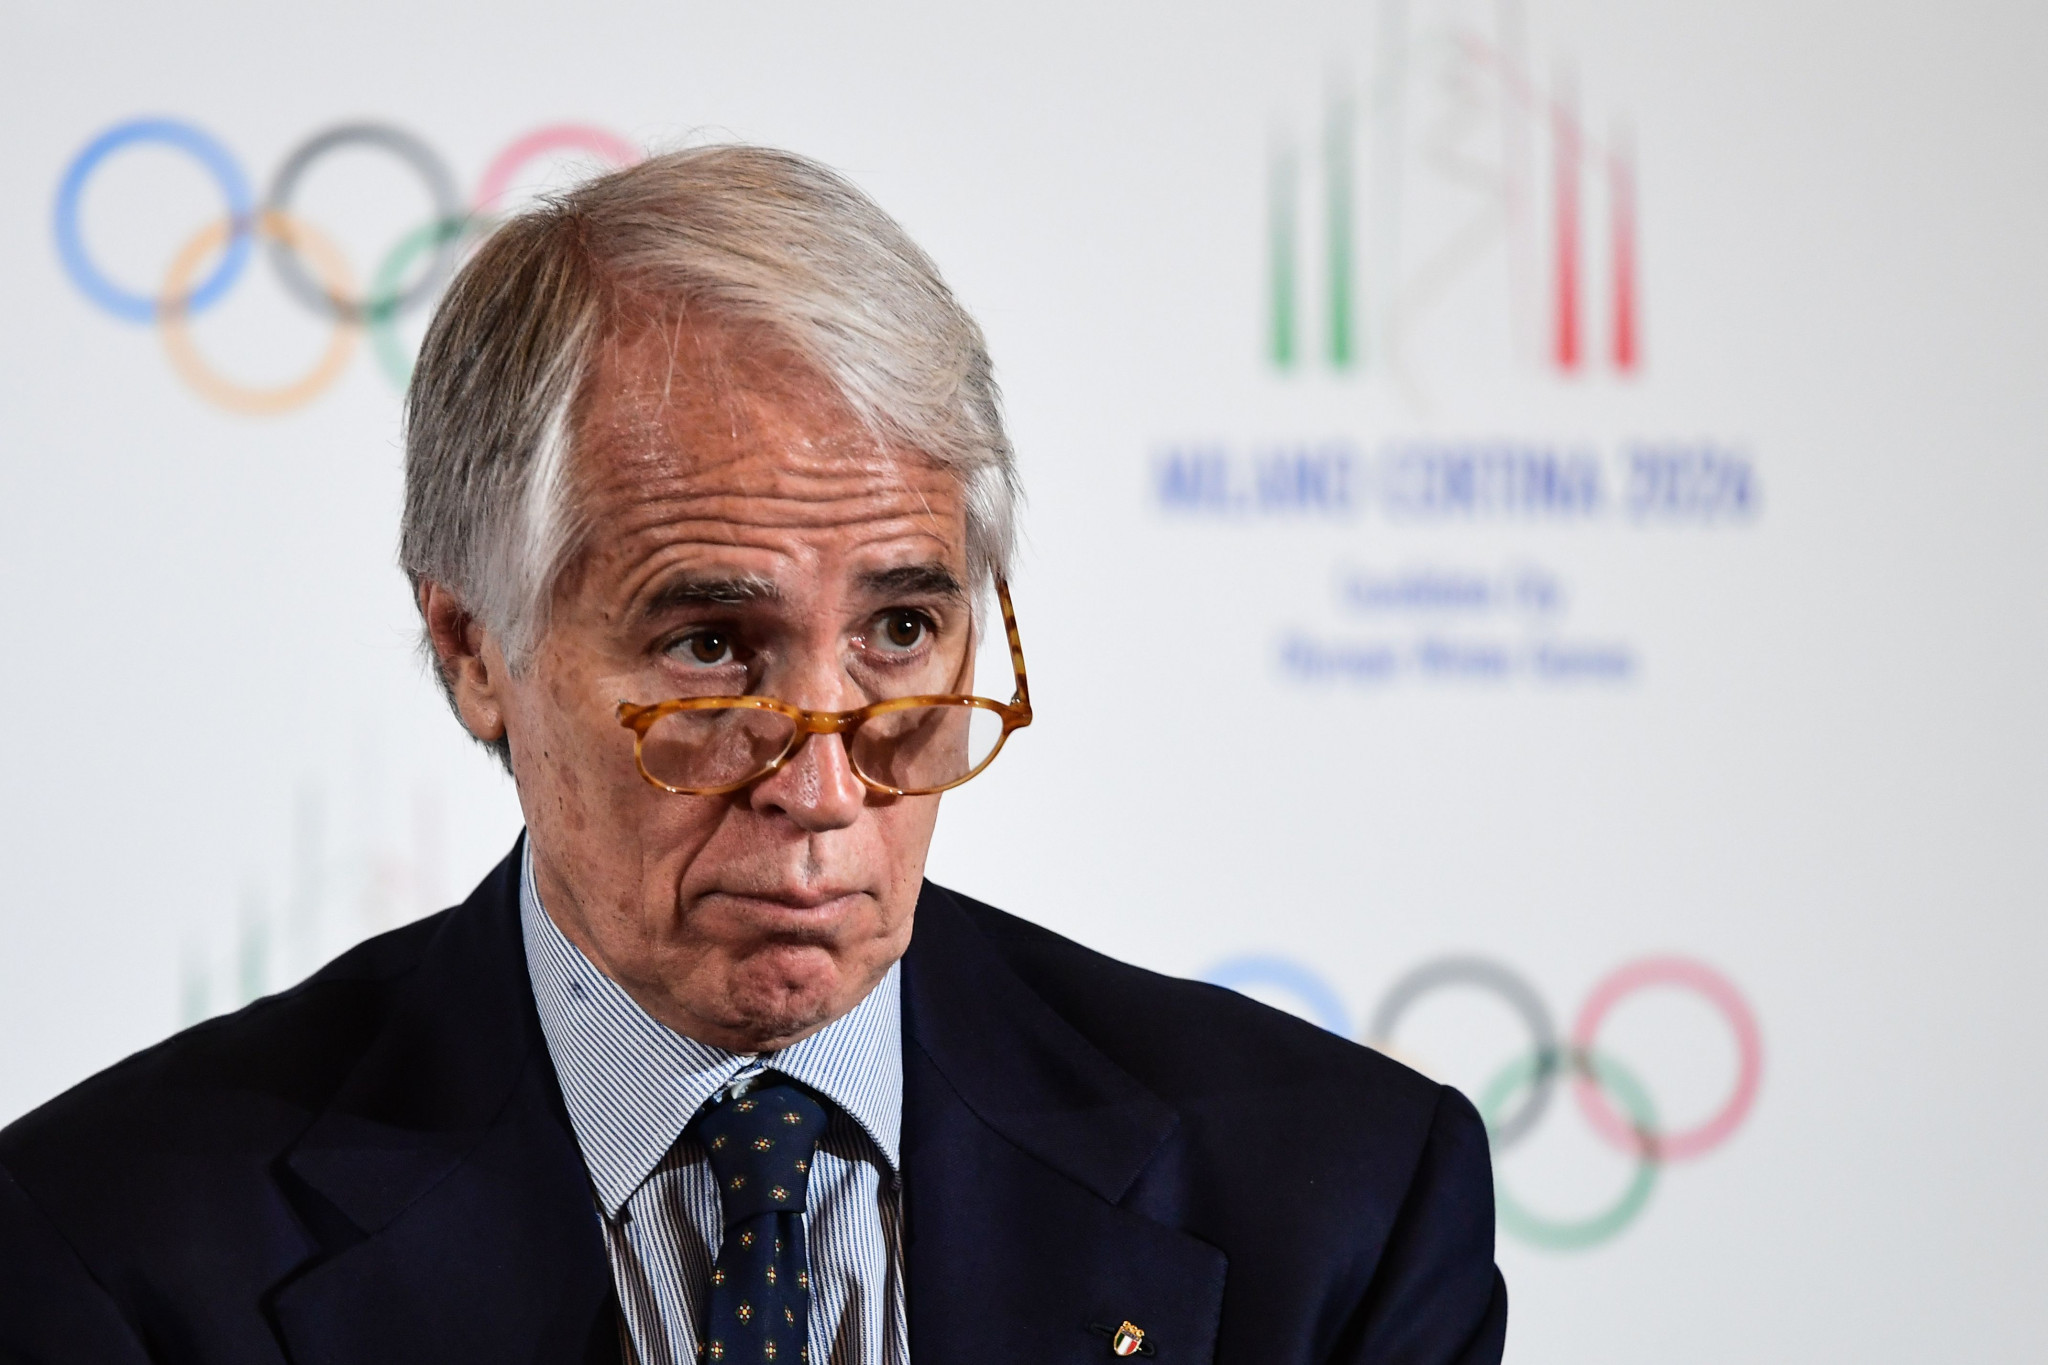 CONI President Giovanni Malagò has stated he would be the Milan Cortina Organising Committee President ©Getty Images